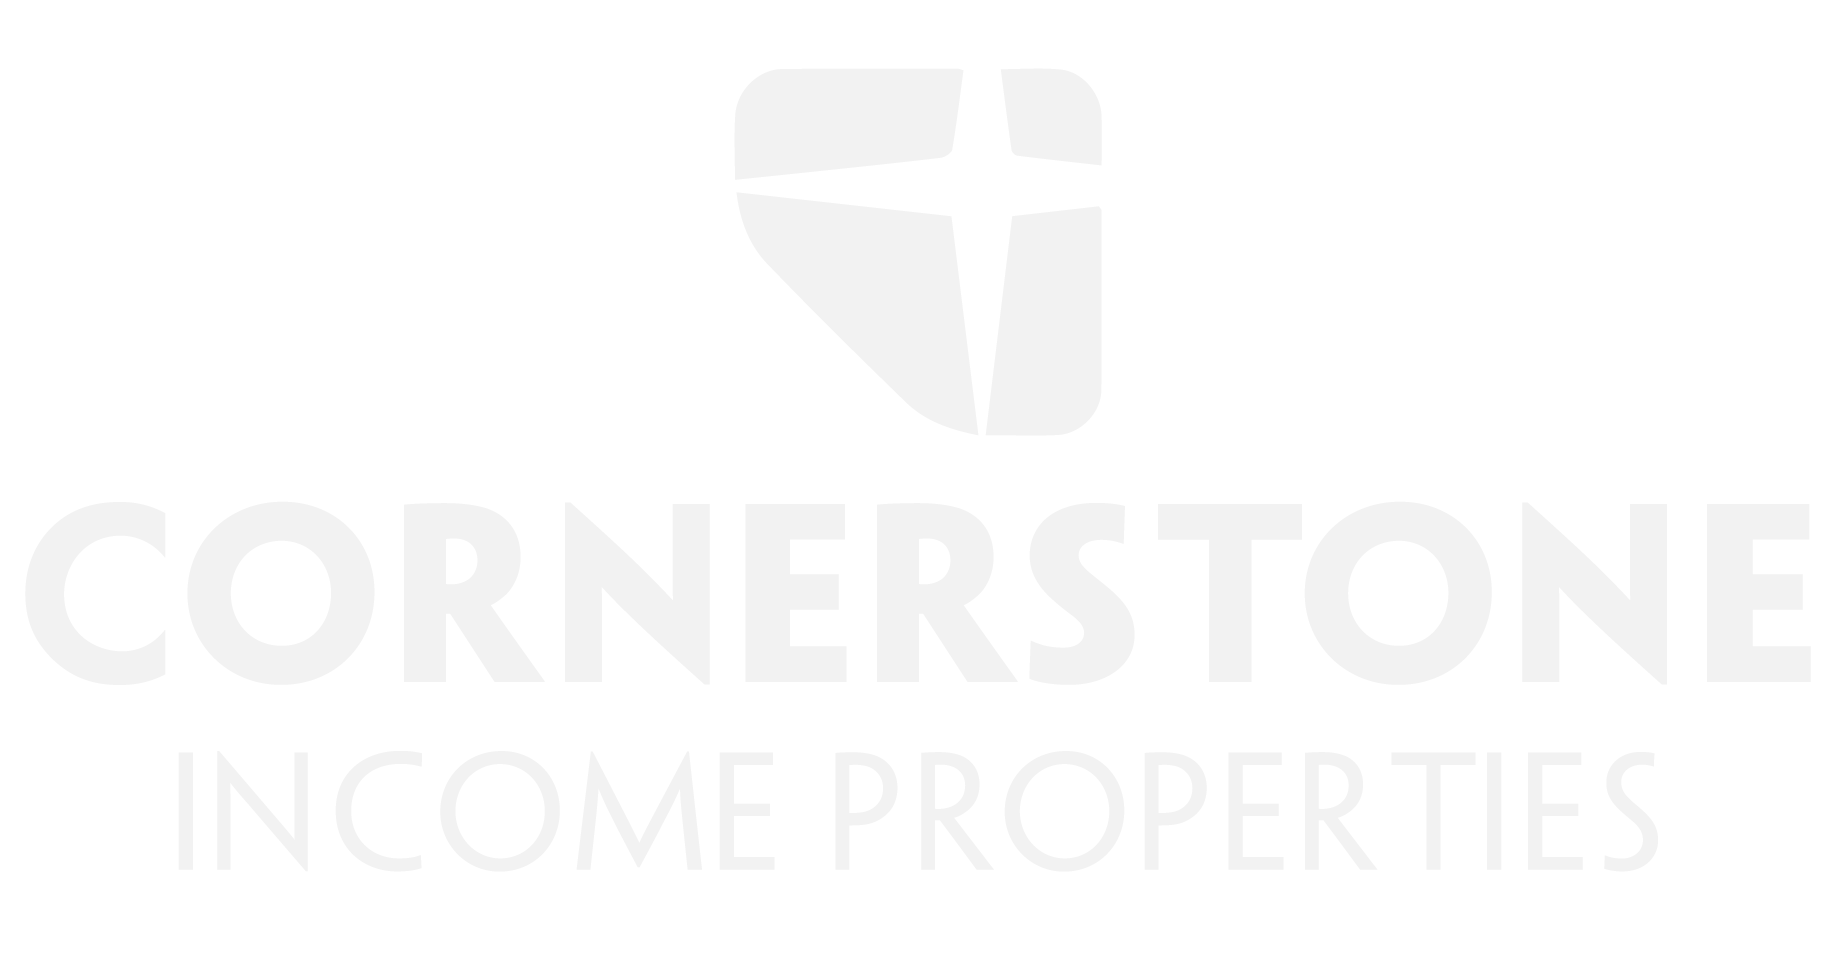 Cornerstone Income Properties